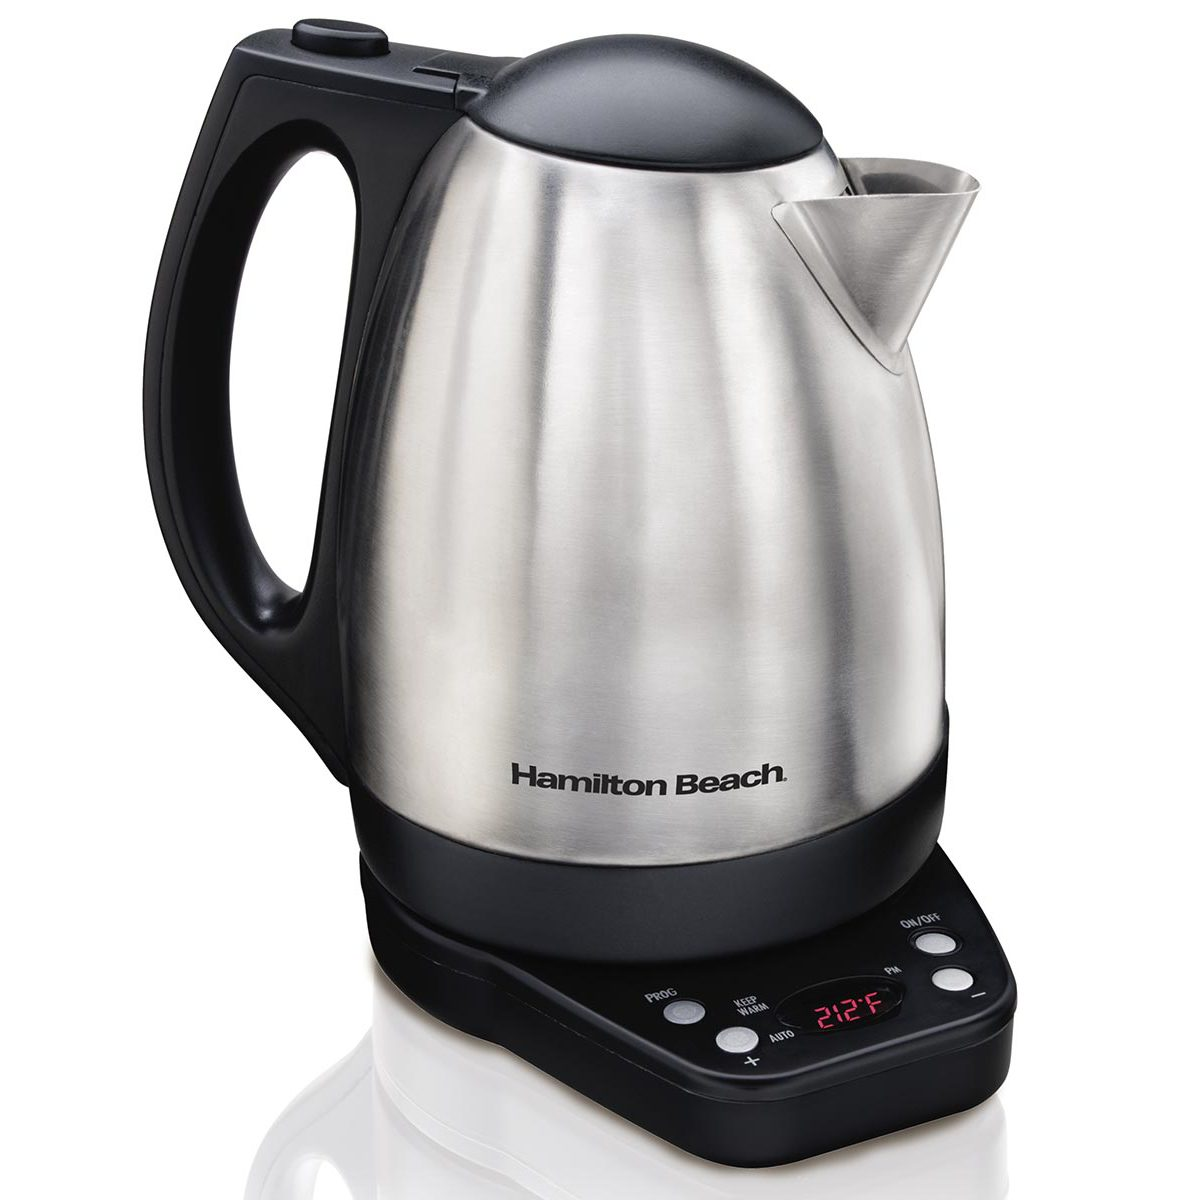 Programmable 1.7 Liter Kettle (40996)